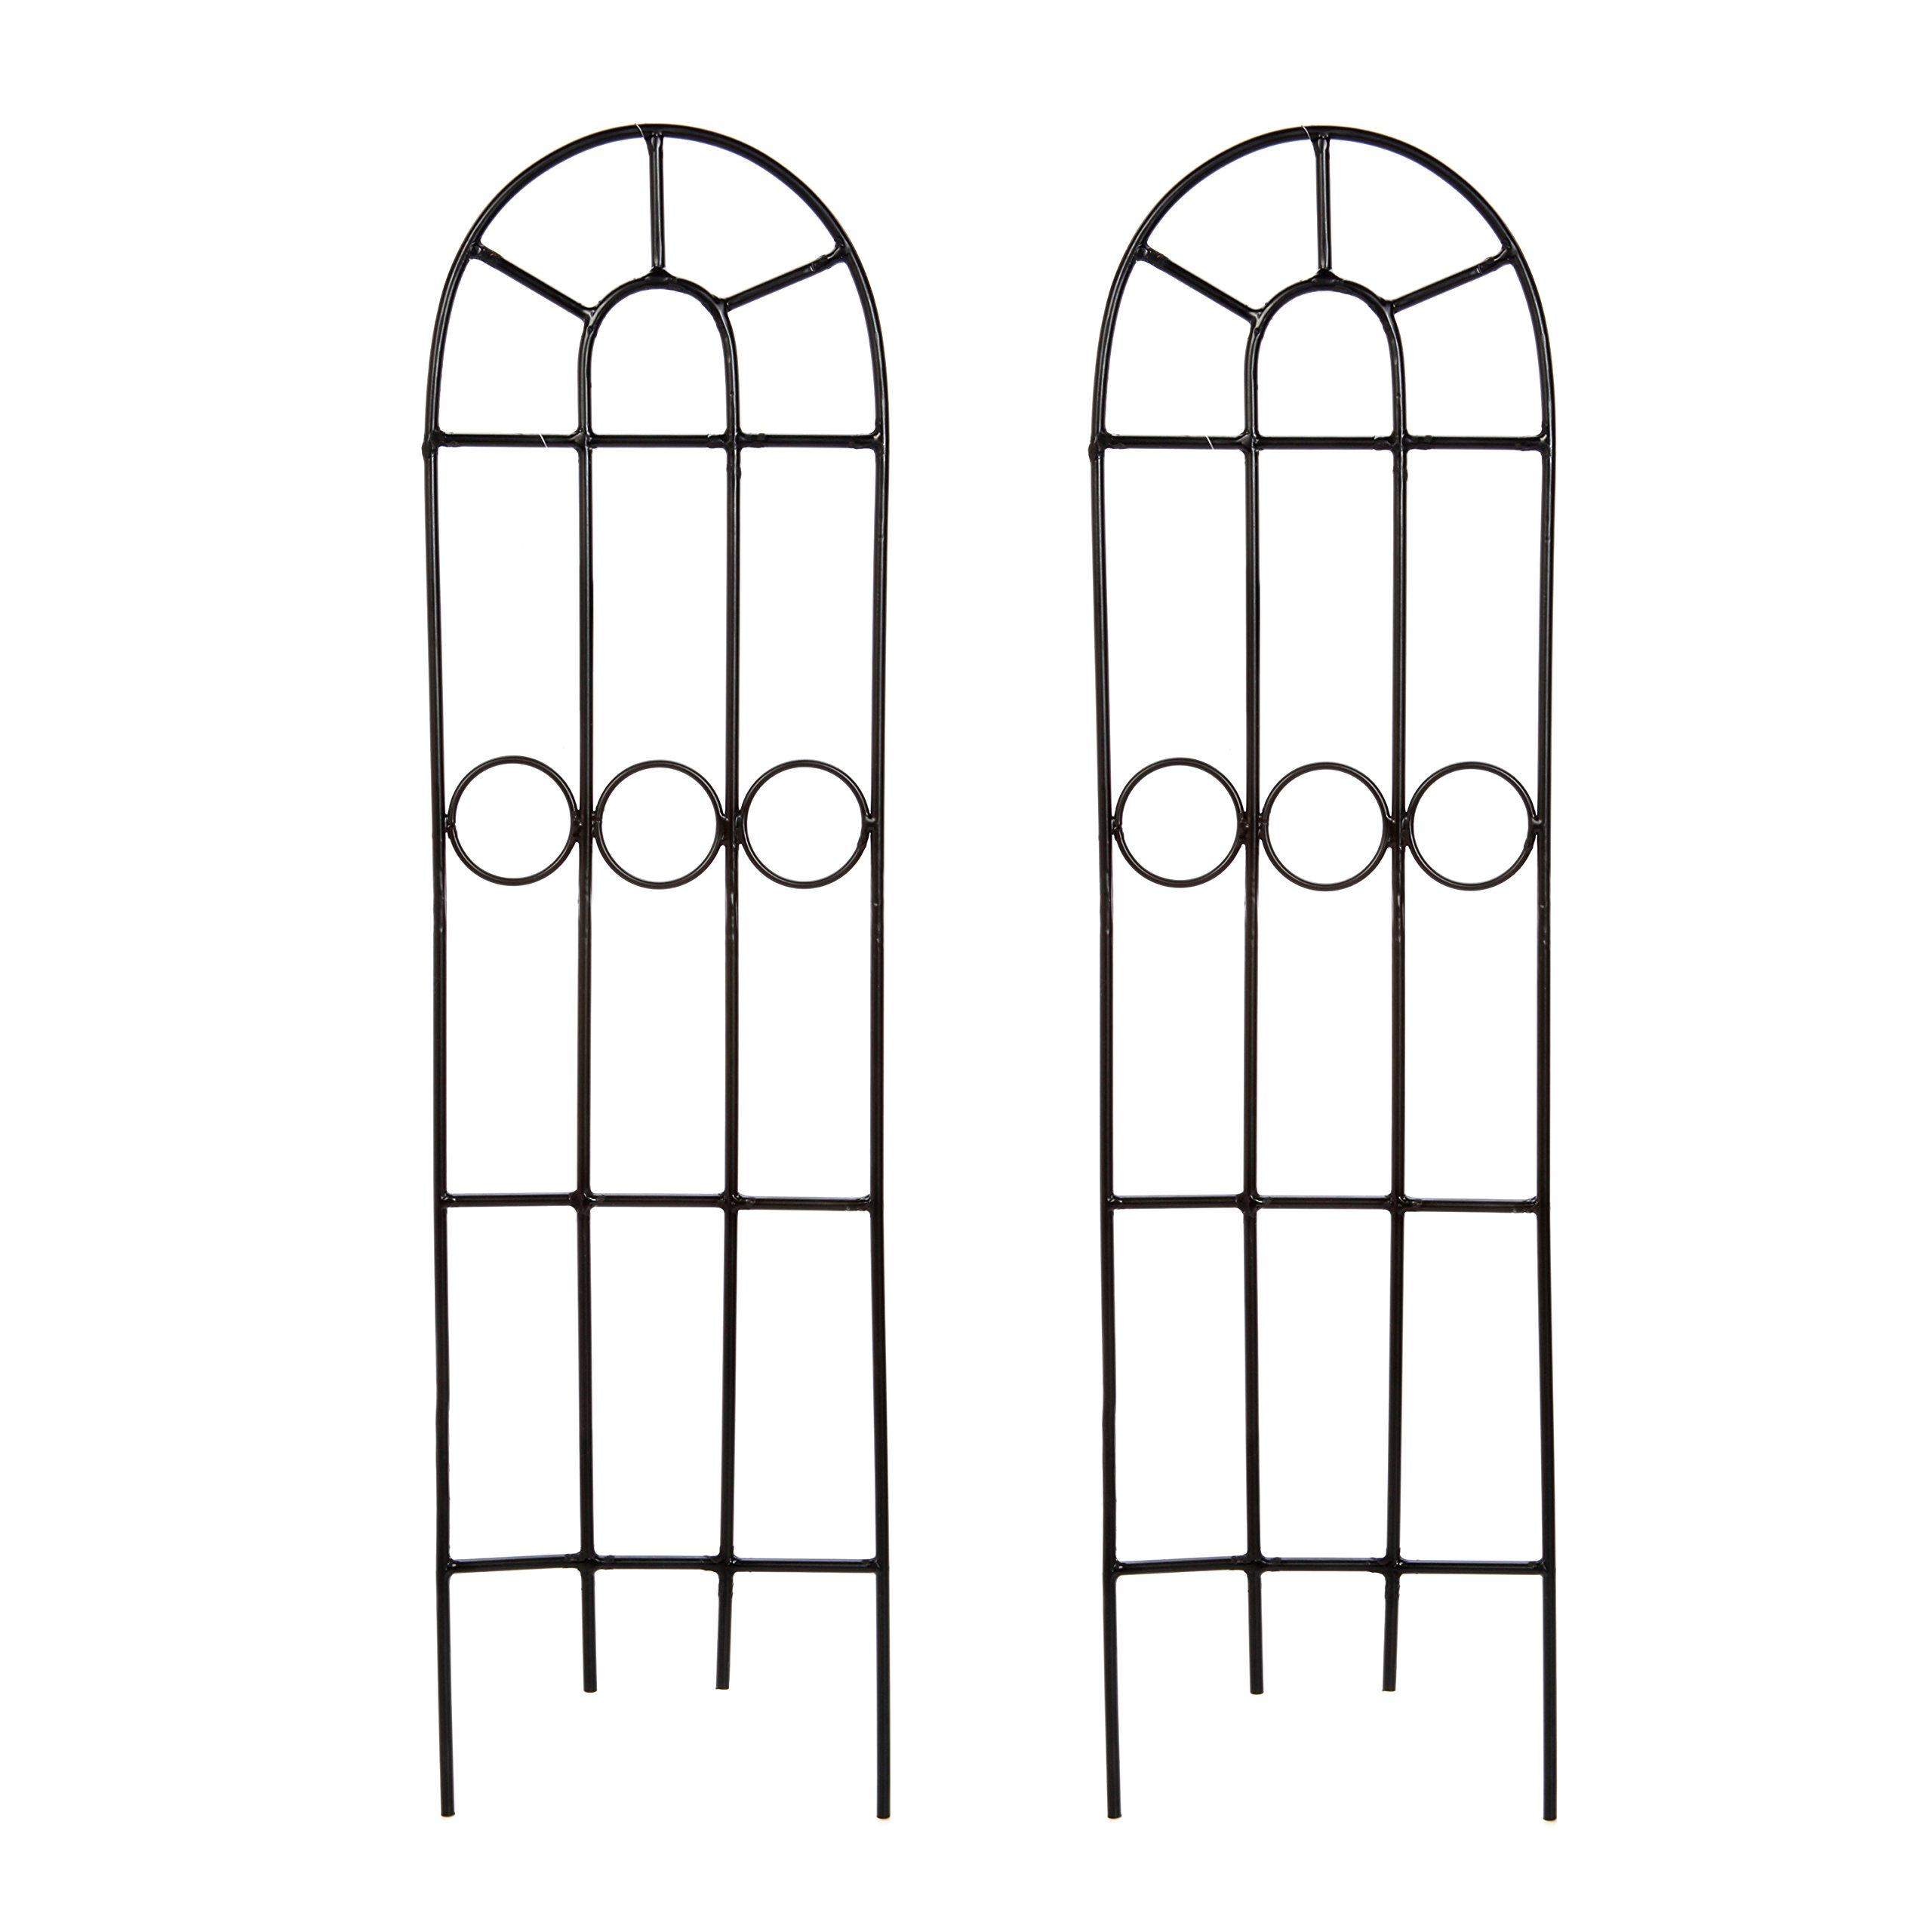 """Hosley Set of 2 Classic Iron Trellis, 27"""" High. Ideal Gift for Wedding or Party and Use Next to Structures (Home or Office) or in Planters for Growing Floral, Plants, Vines and Vegetables O4"""